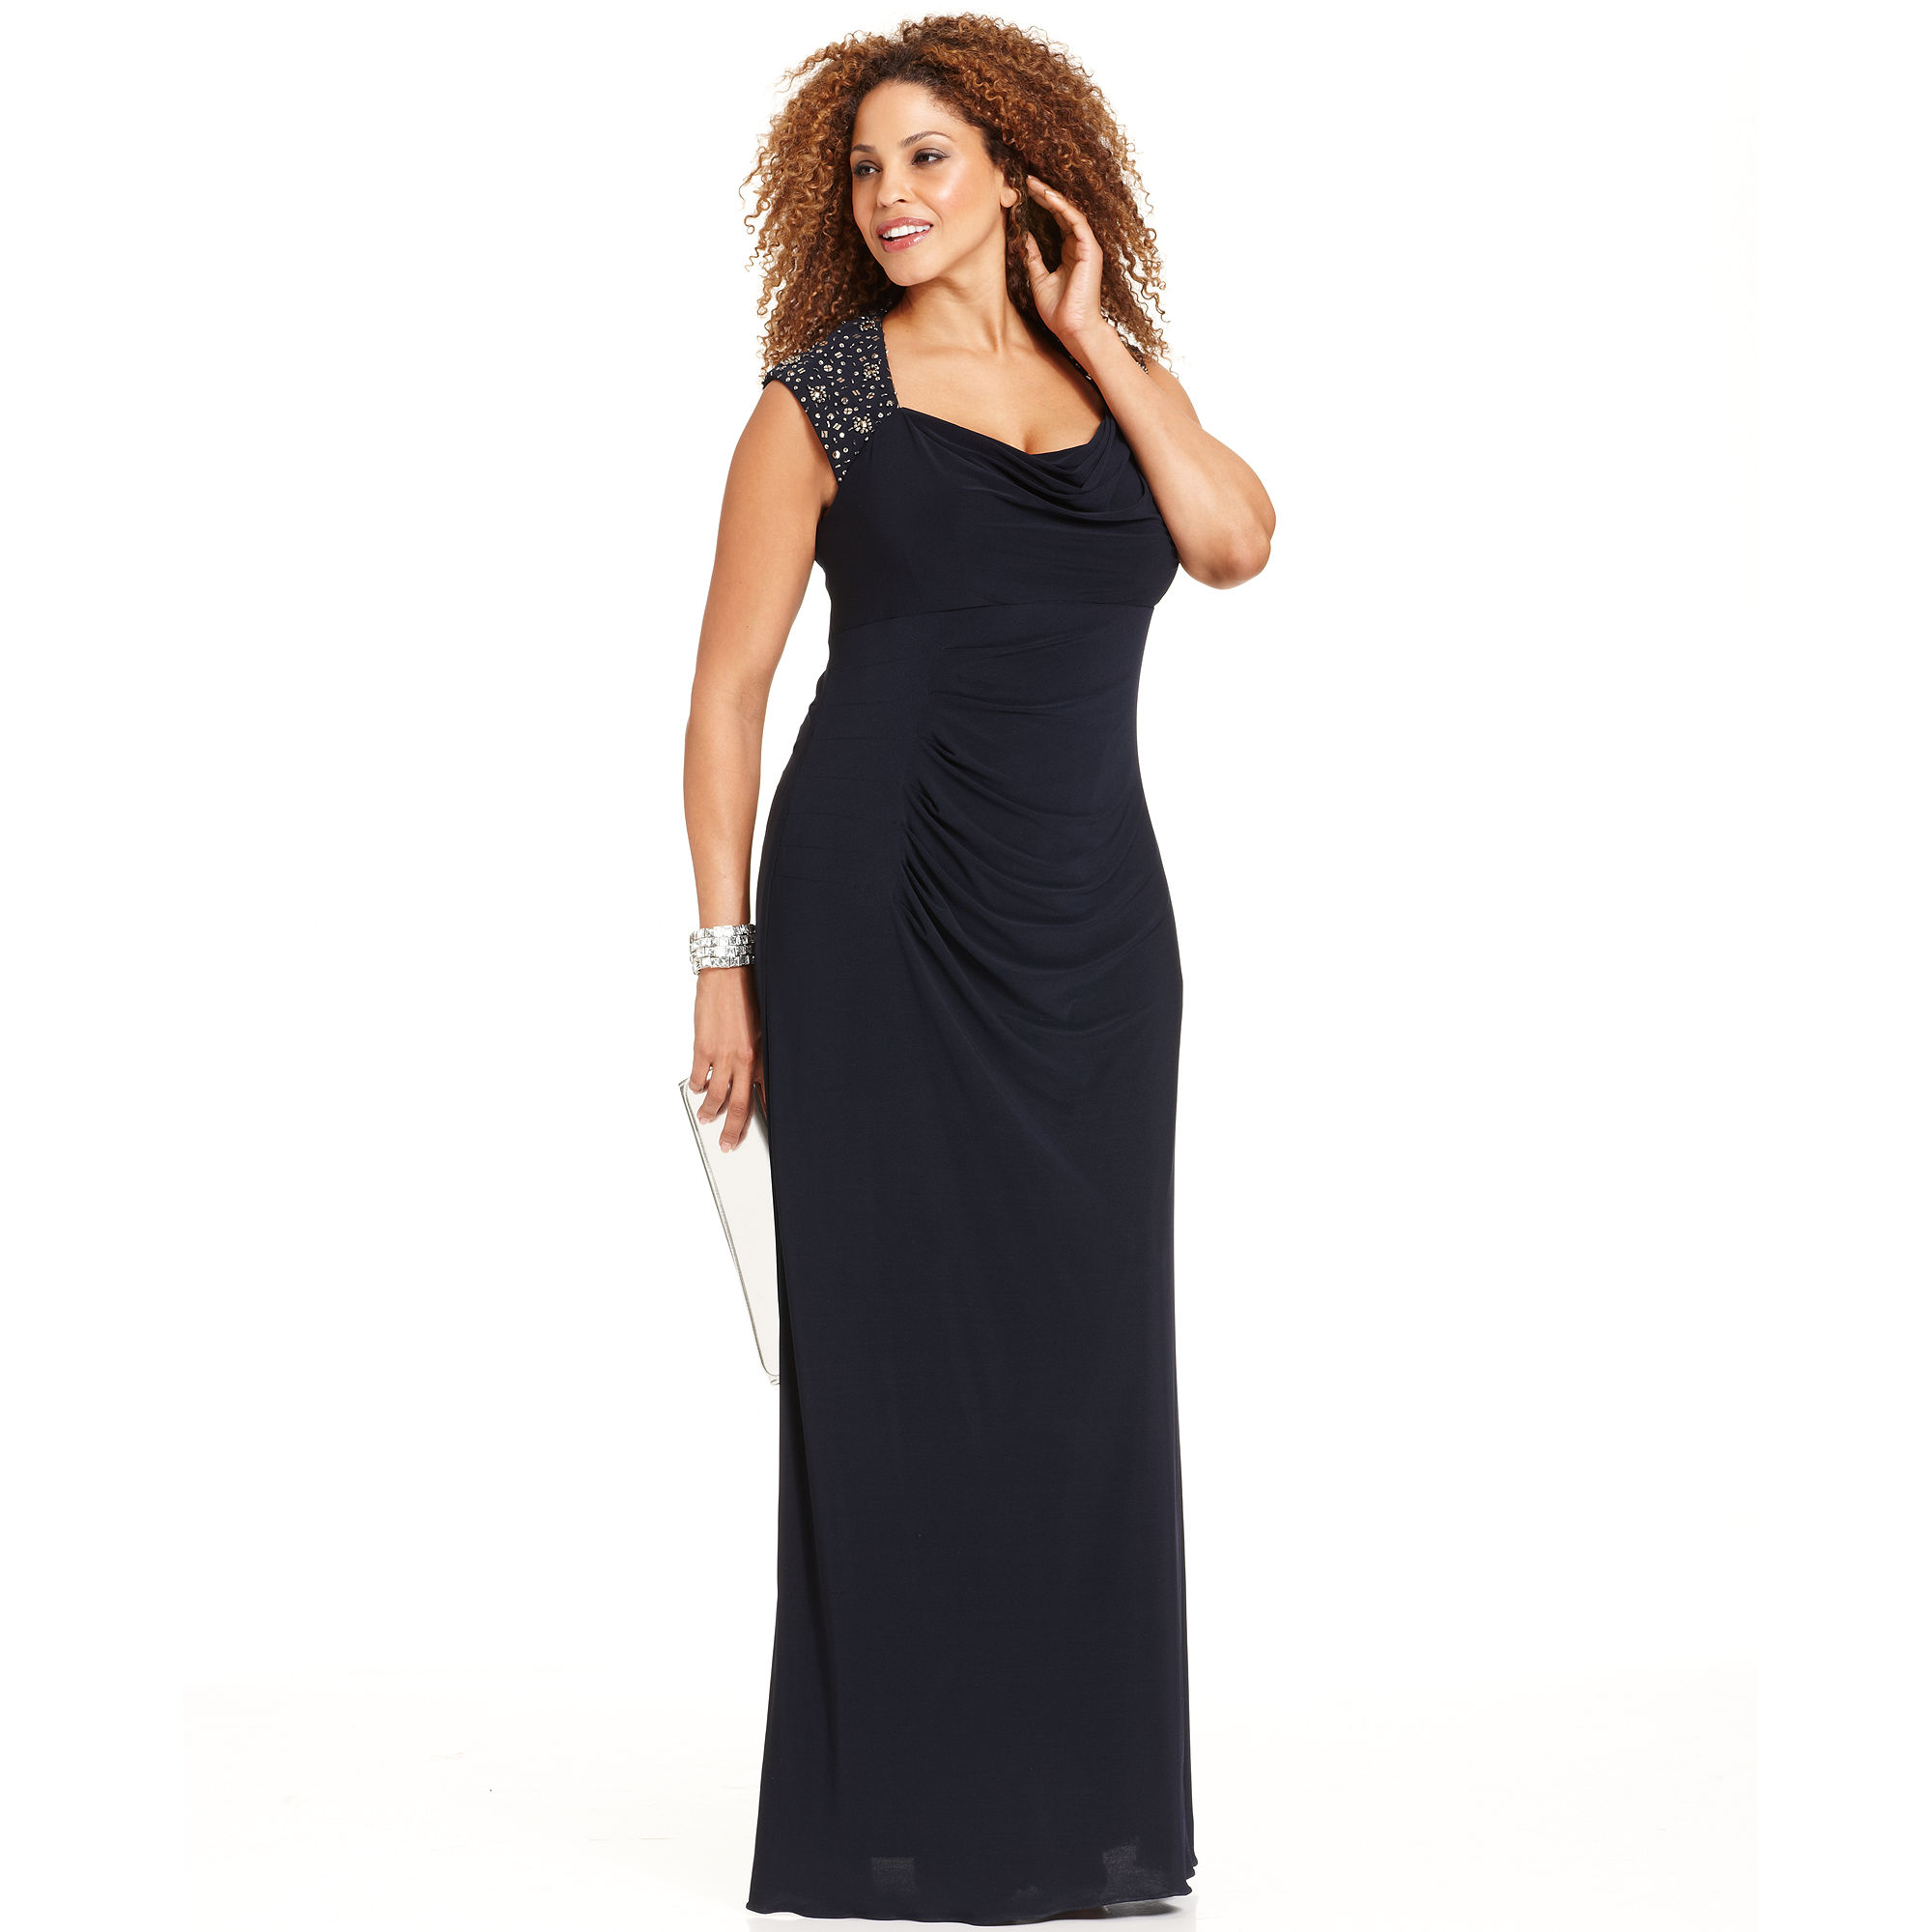 cadabc2023d17 Lyst - Xscape Xscape Plus Size Dress Capsleeve Beaded cutout Gown in ...